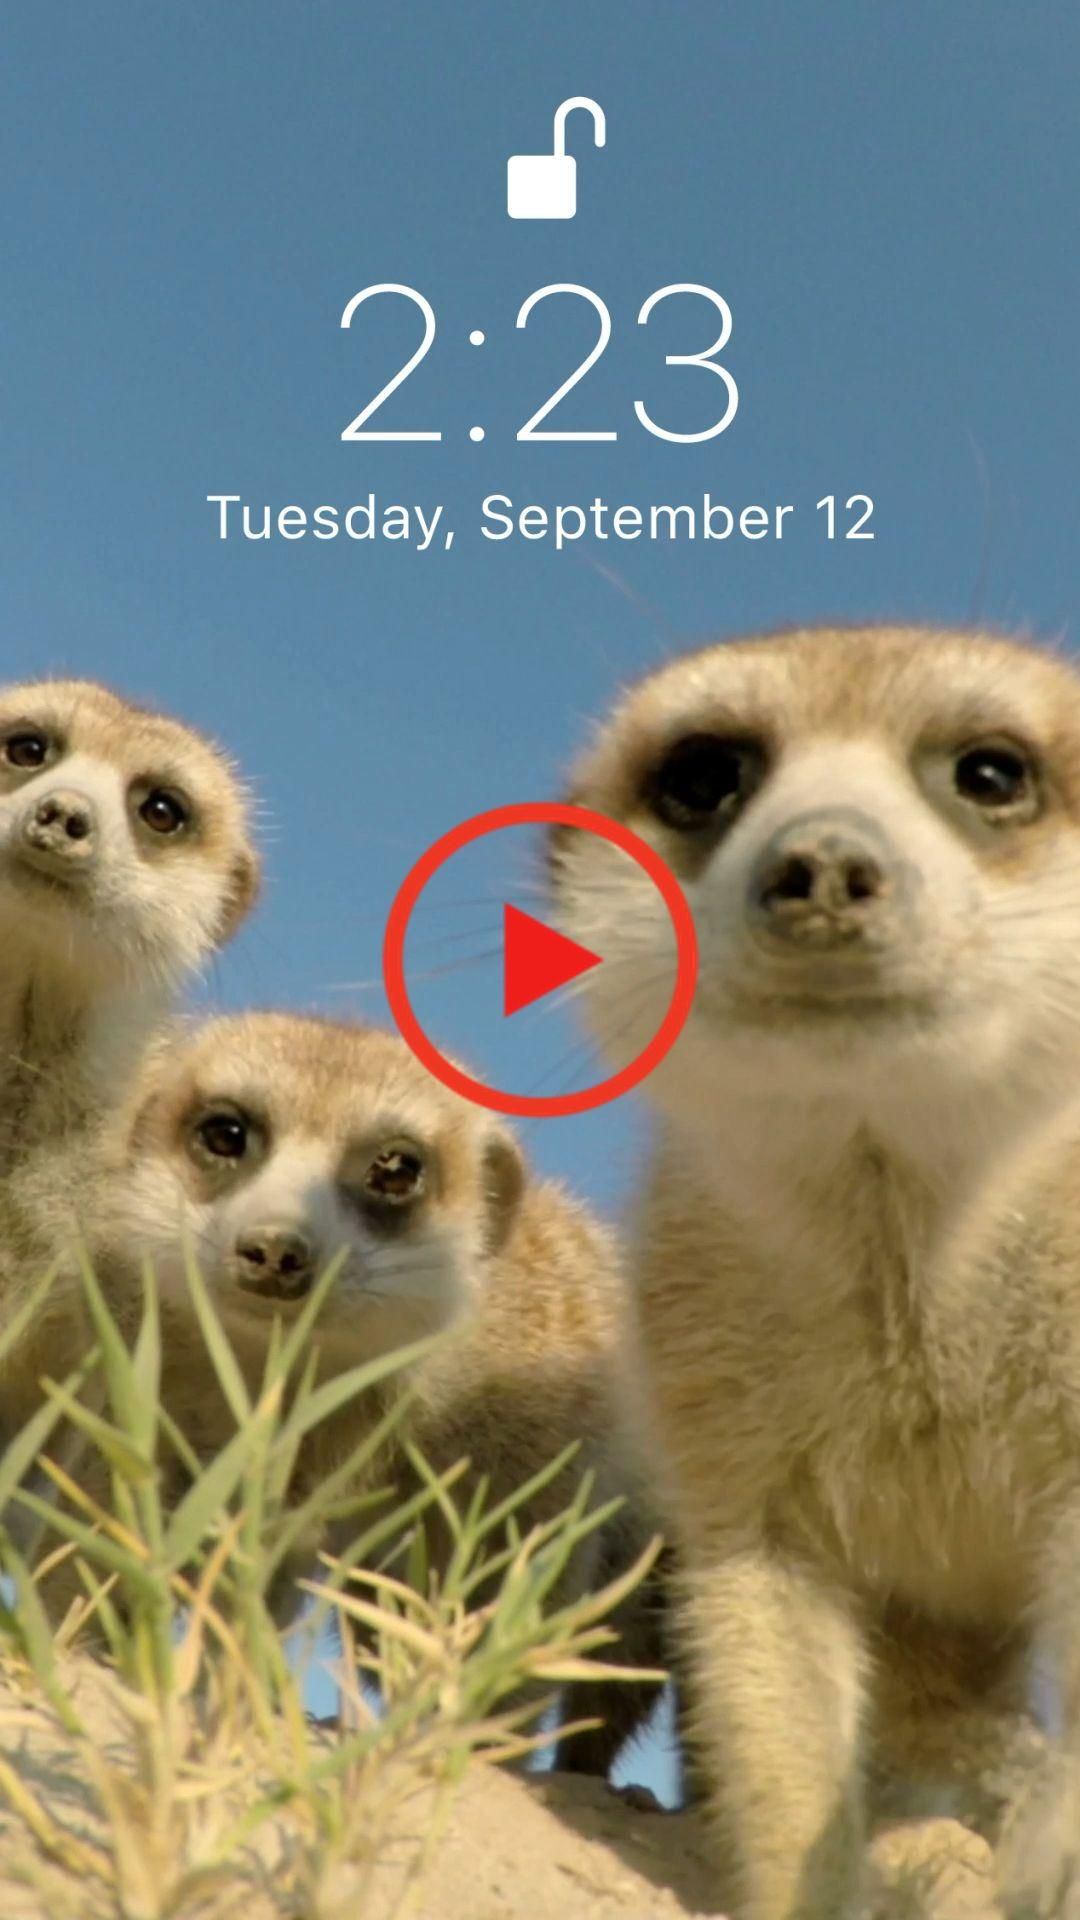 Funny live wallpaper for your iPhone XS from Everpix Live